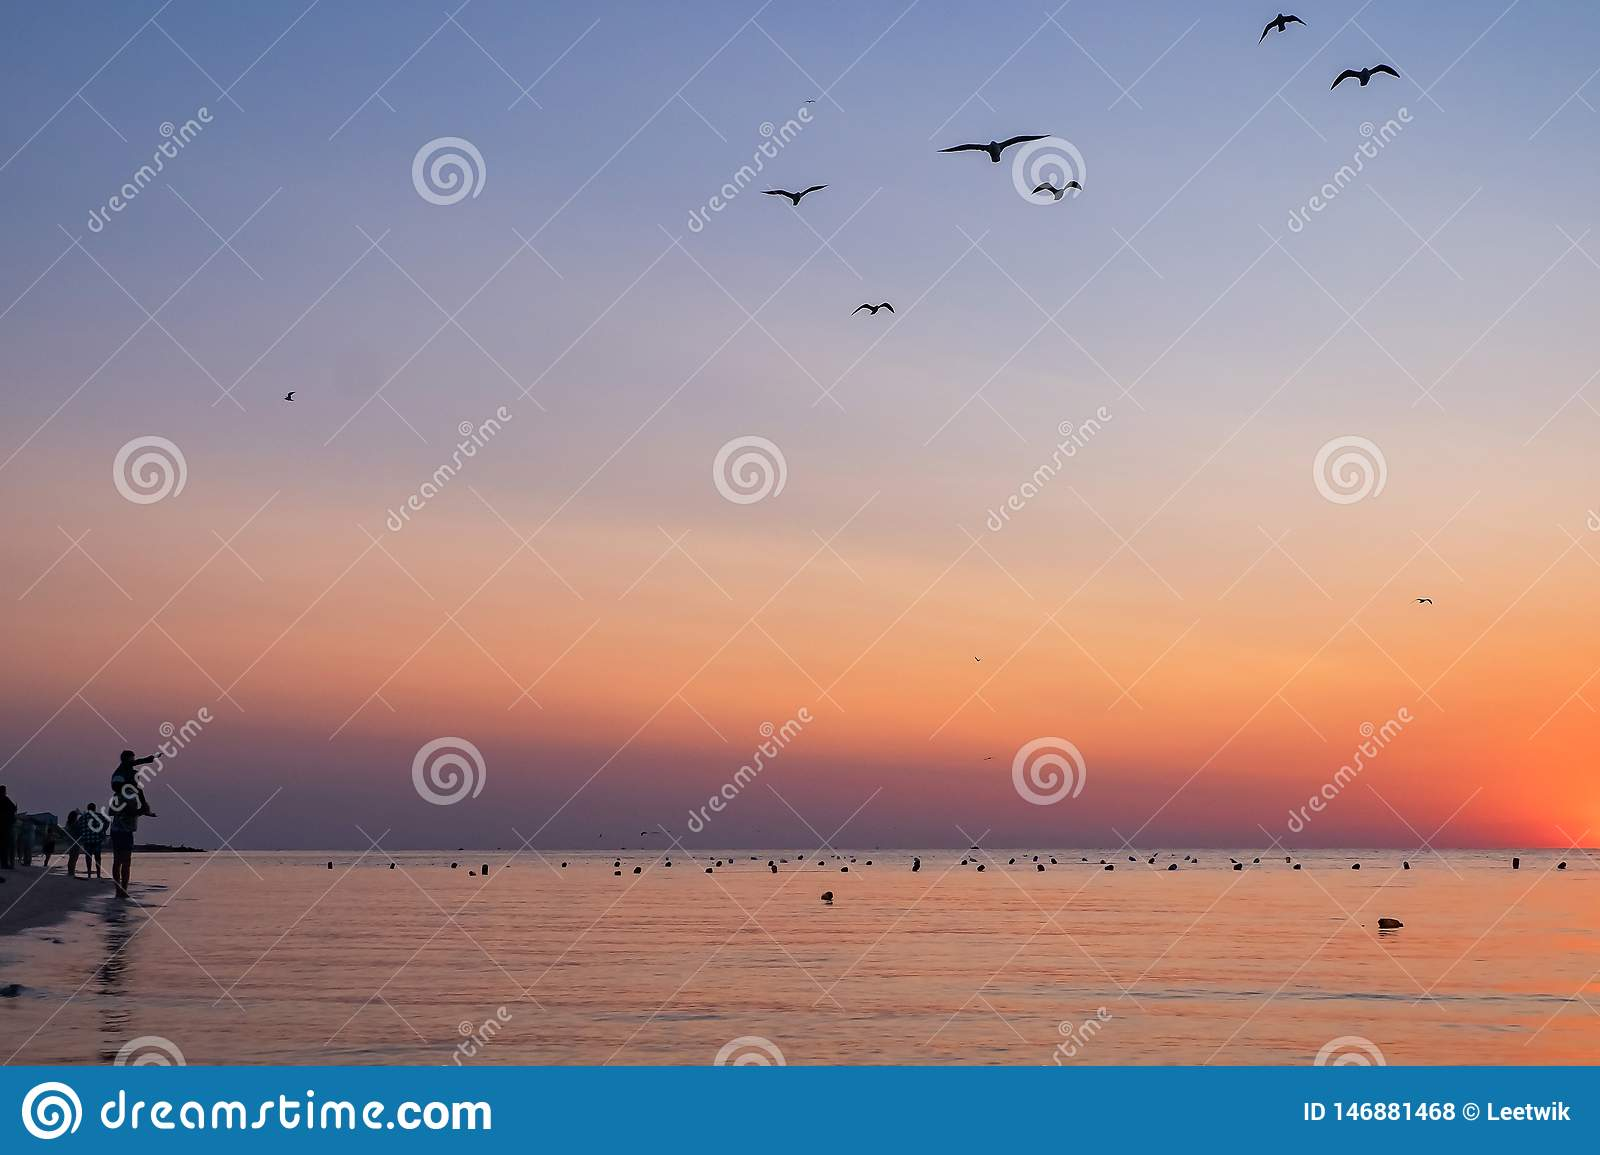 People meet the colorful sunrise on the beach to the sea. silhouettes of people and seagulls. father holds a child on his